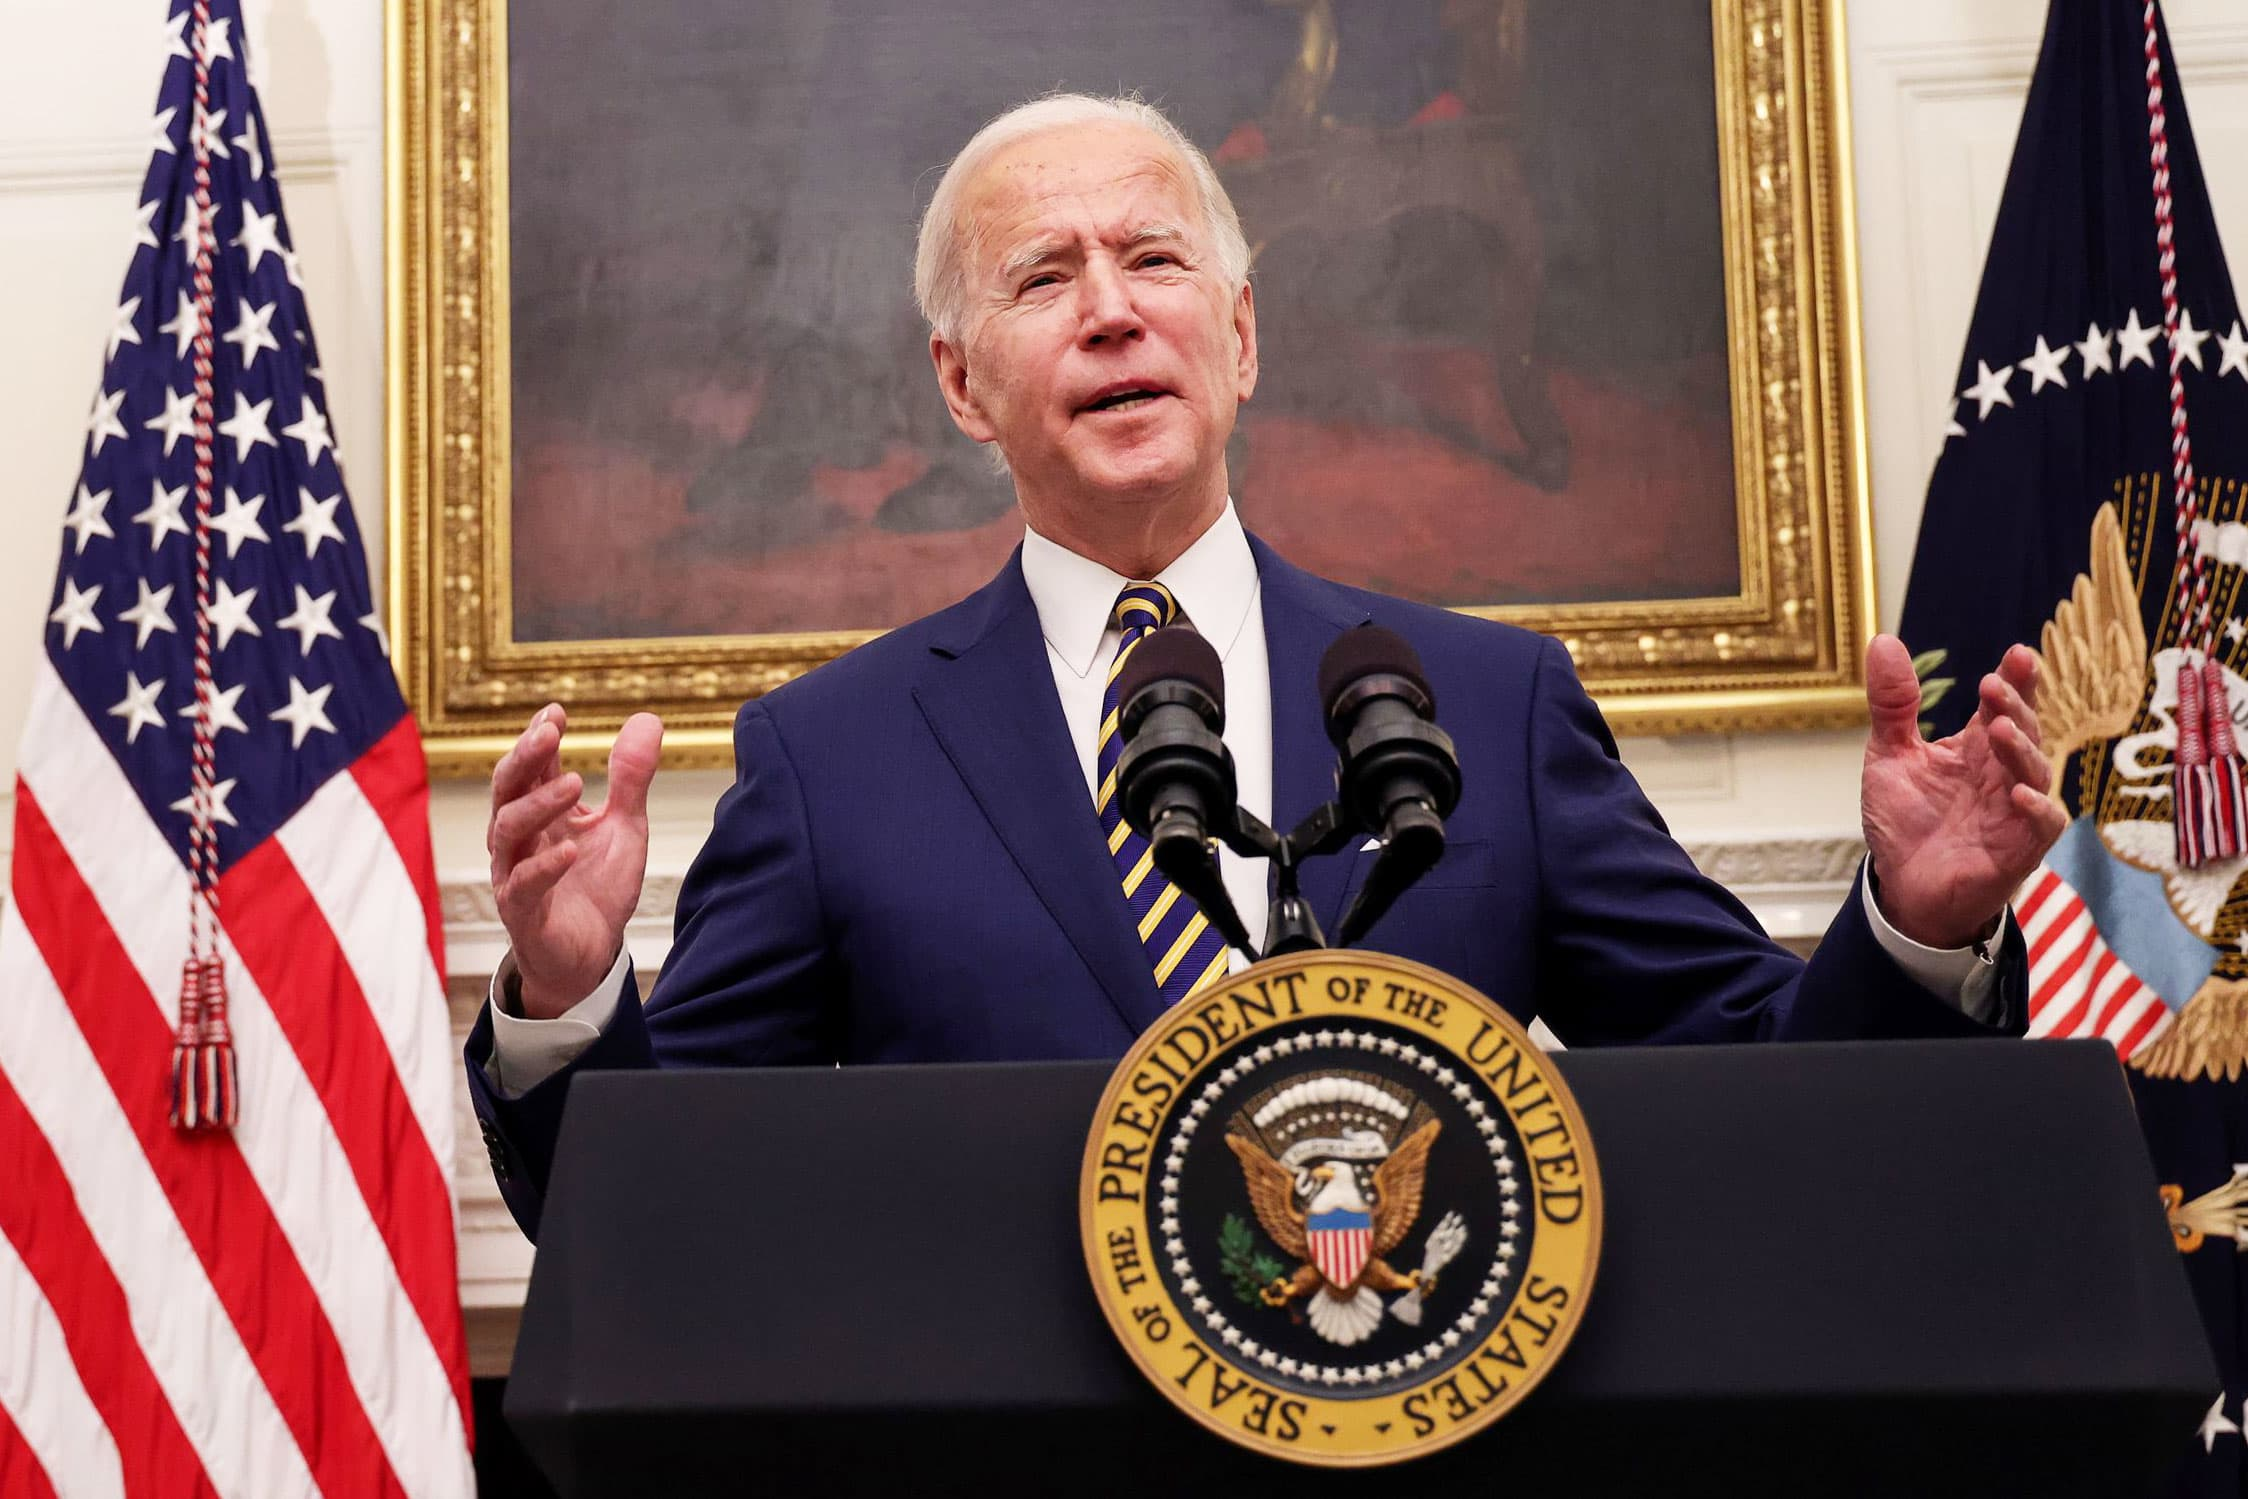 Biden signs executive orders to boost food benefits, workers' rights as part of Covid relief push